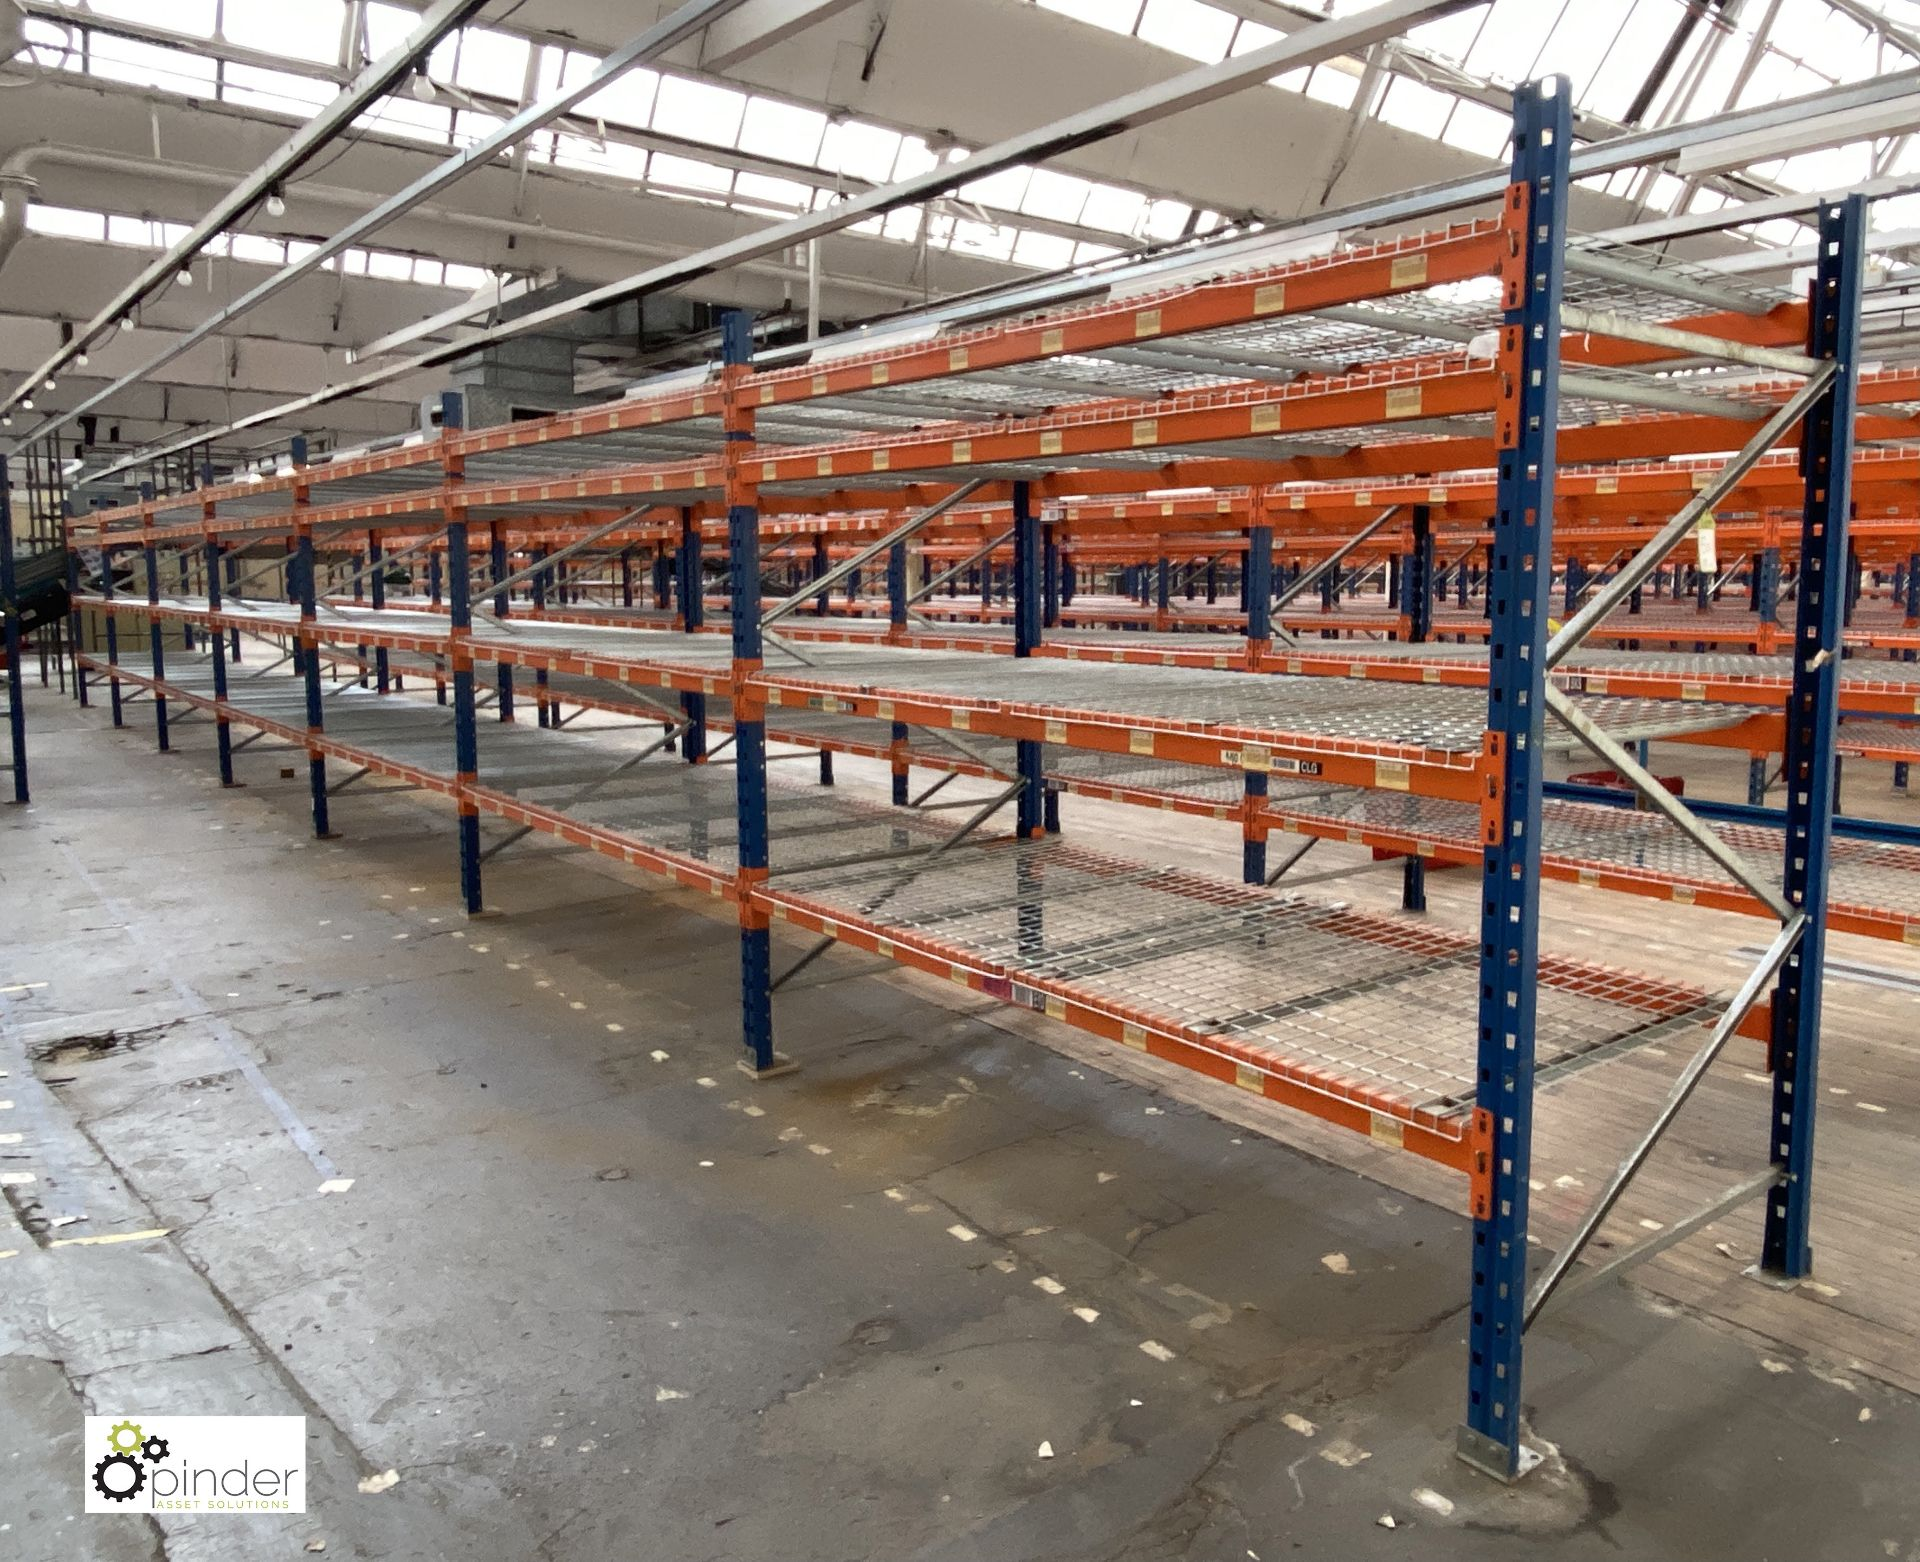 7 bays PSS 2K85 16 boltless Stock Racking, comprising 8 uprights 2400mm x 1200mm, 56 beams 2700mm, - Image 2 of 5